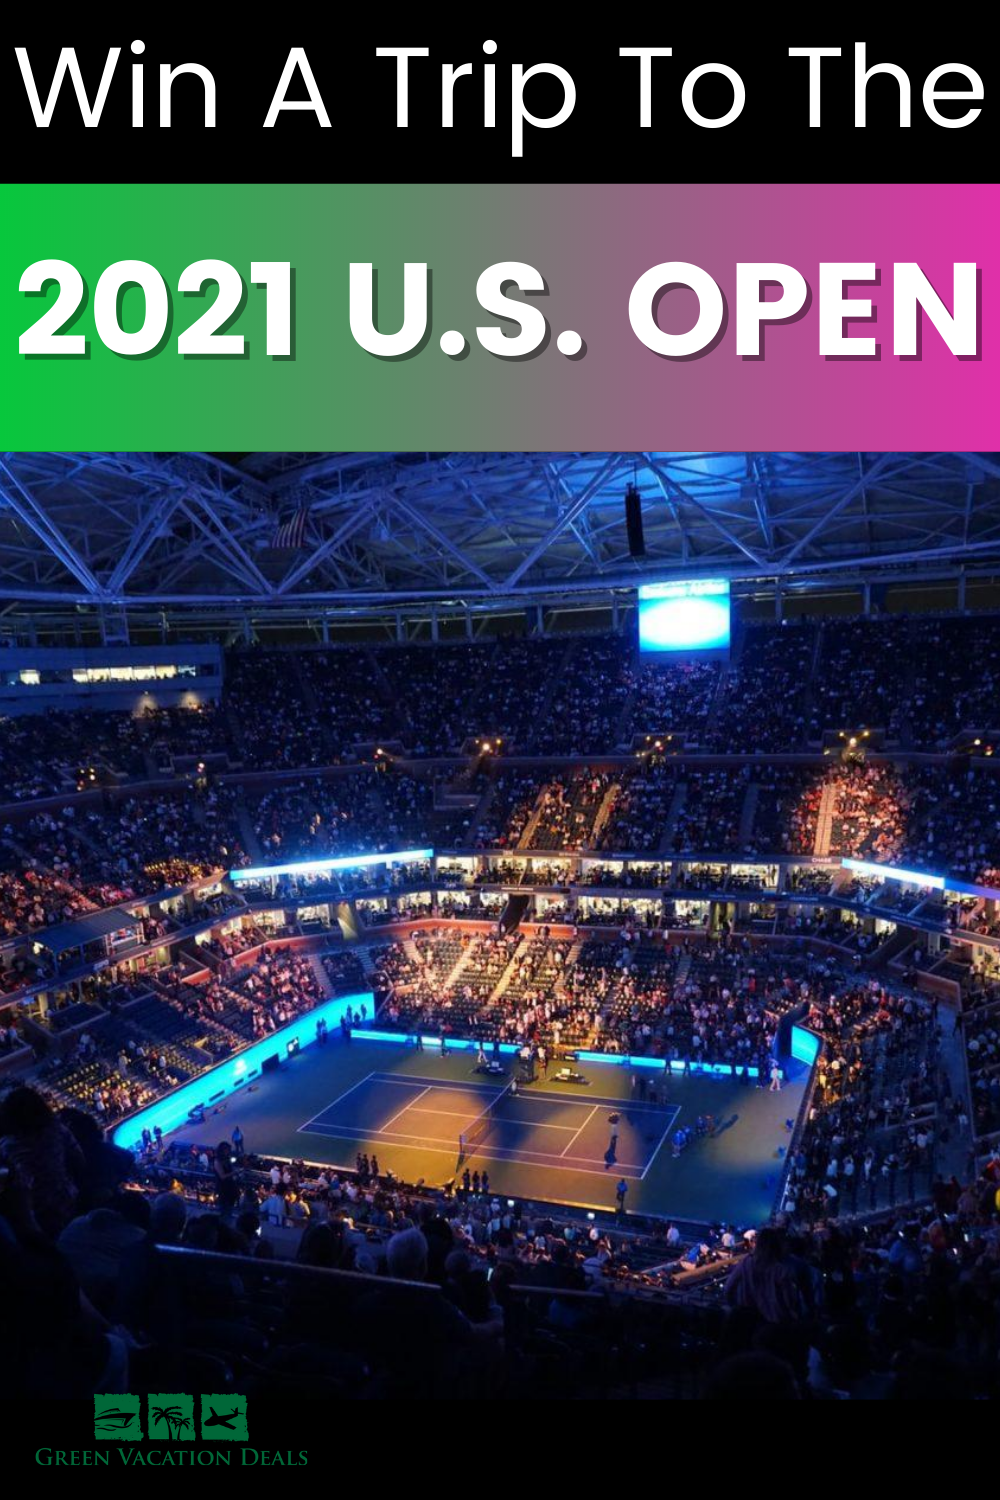 Enter Kim Crawford - 2021 U.S. Open Tennis Championship Sweepstakes & win round trip airfare for 4 to New York City, 3-night hotel stay & check. ARV=$13,520 #USOpen #Tennis #Sweepstakes #NYC #NewYork #NewYorkCity #travelforfree #freetravel #giveaway #contest #budgettravel #tennisfan #lovetennis #tennislife #budgettraveler #cheaptravel #travel